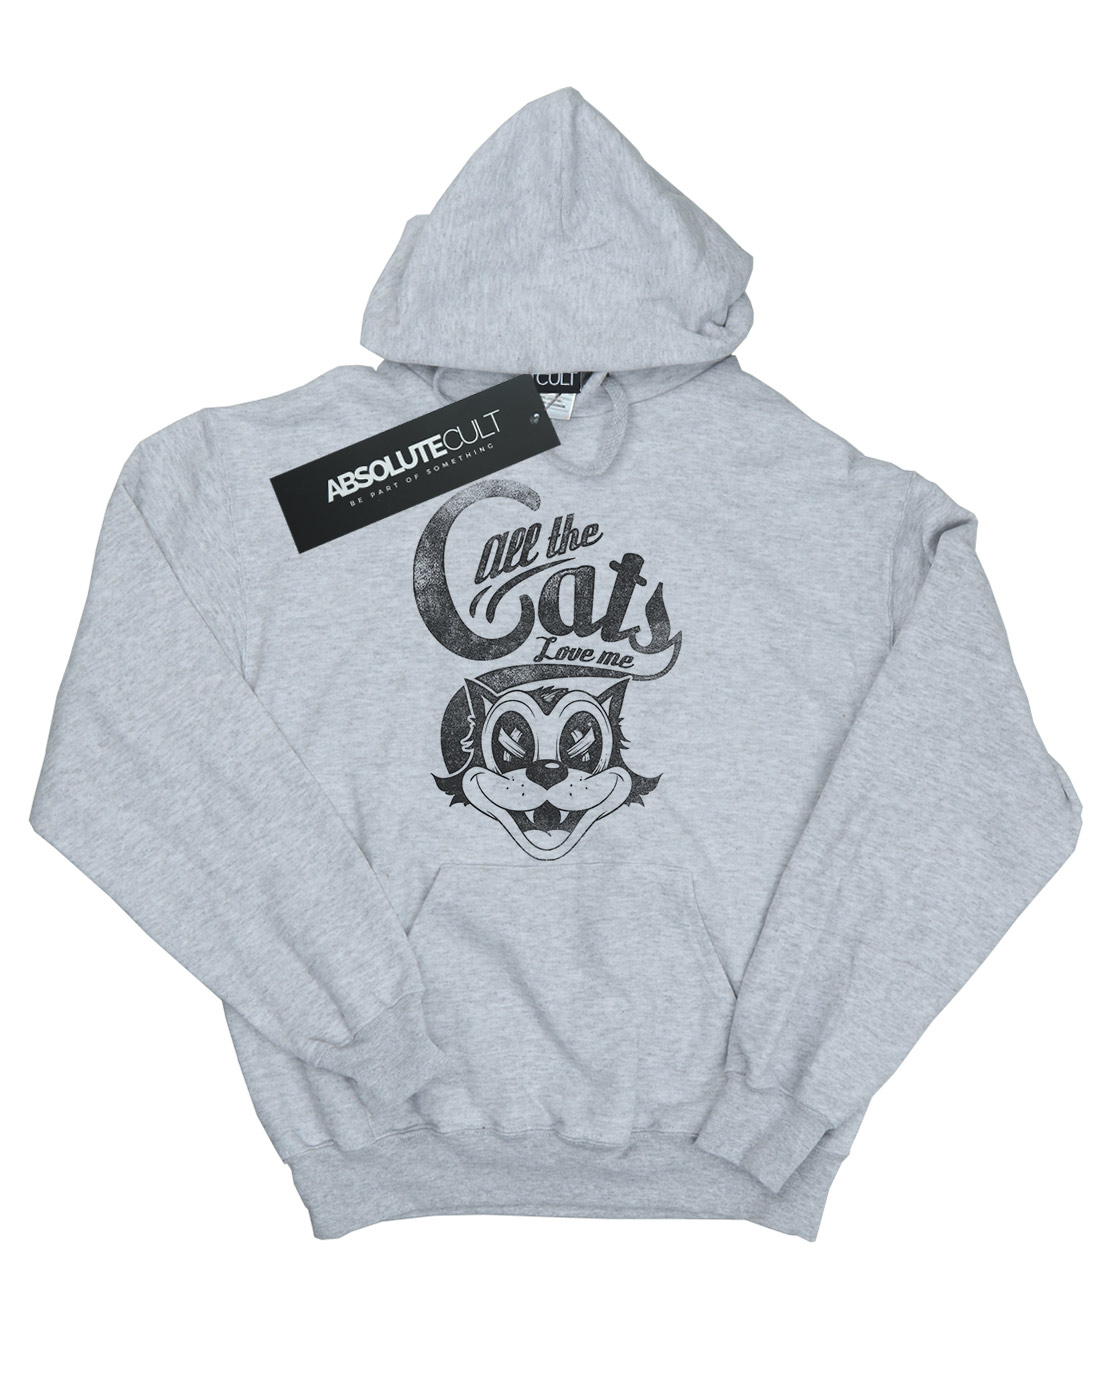 Me All Drewbacca Hoodie Love The Cats Women's q44x5wrXS1